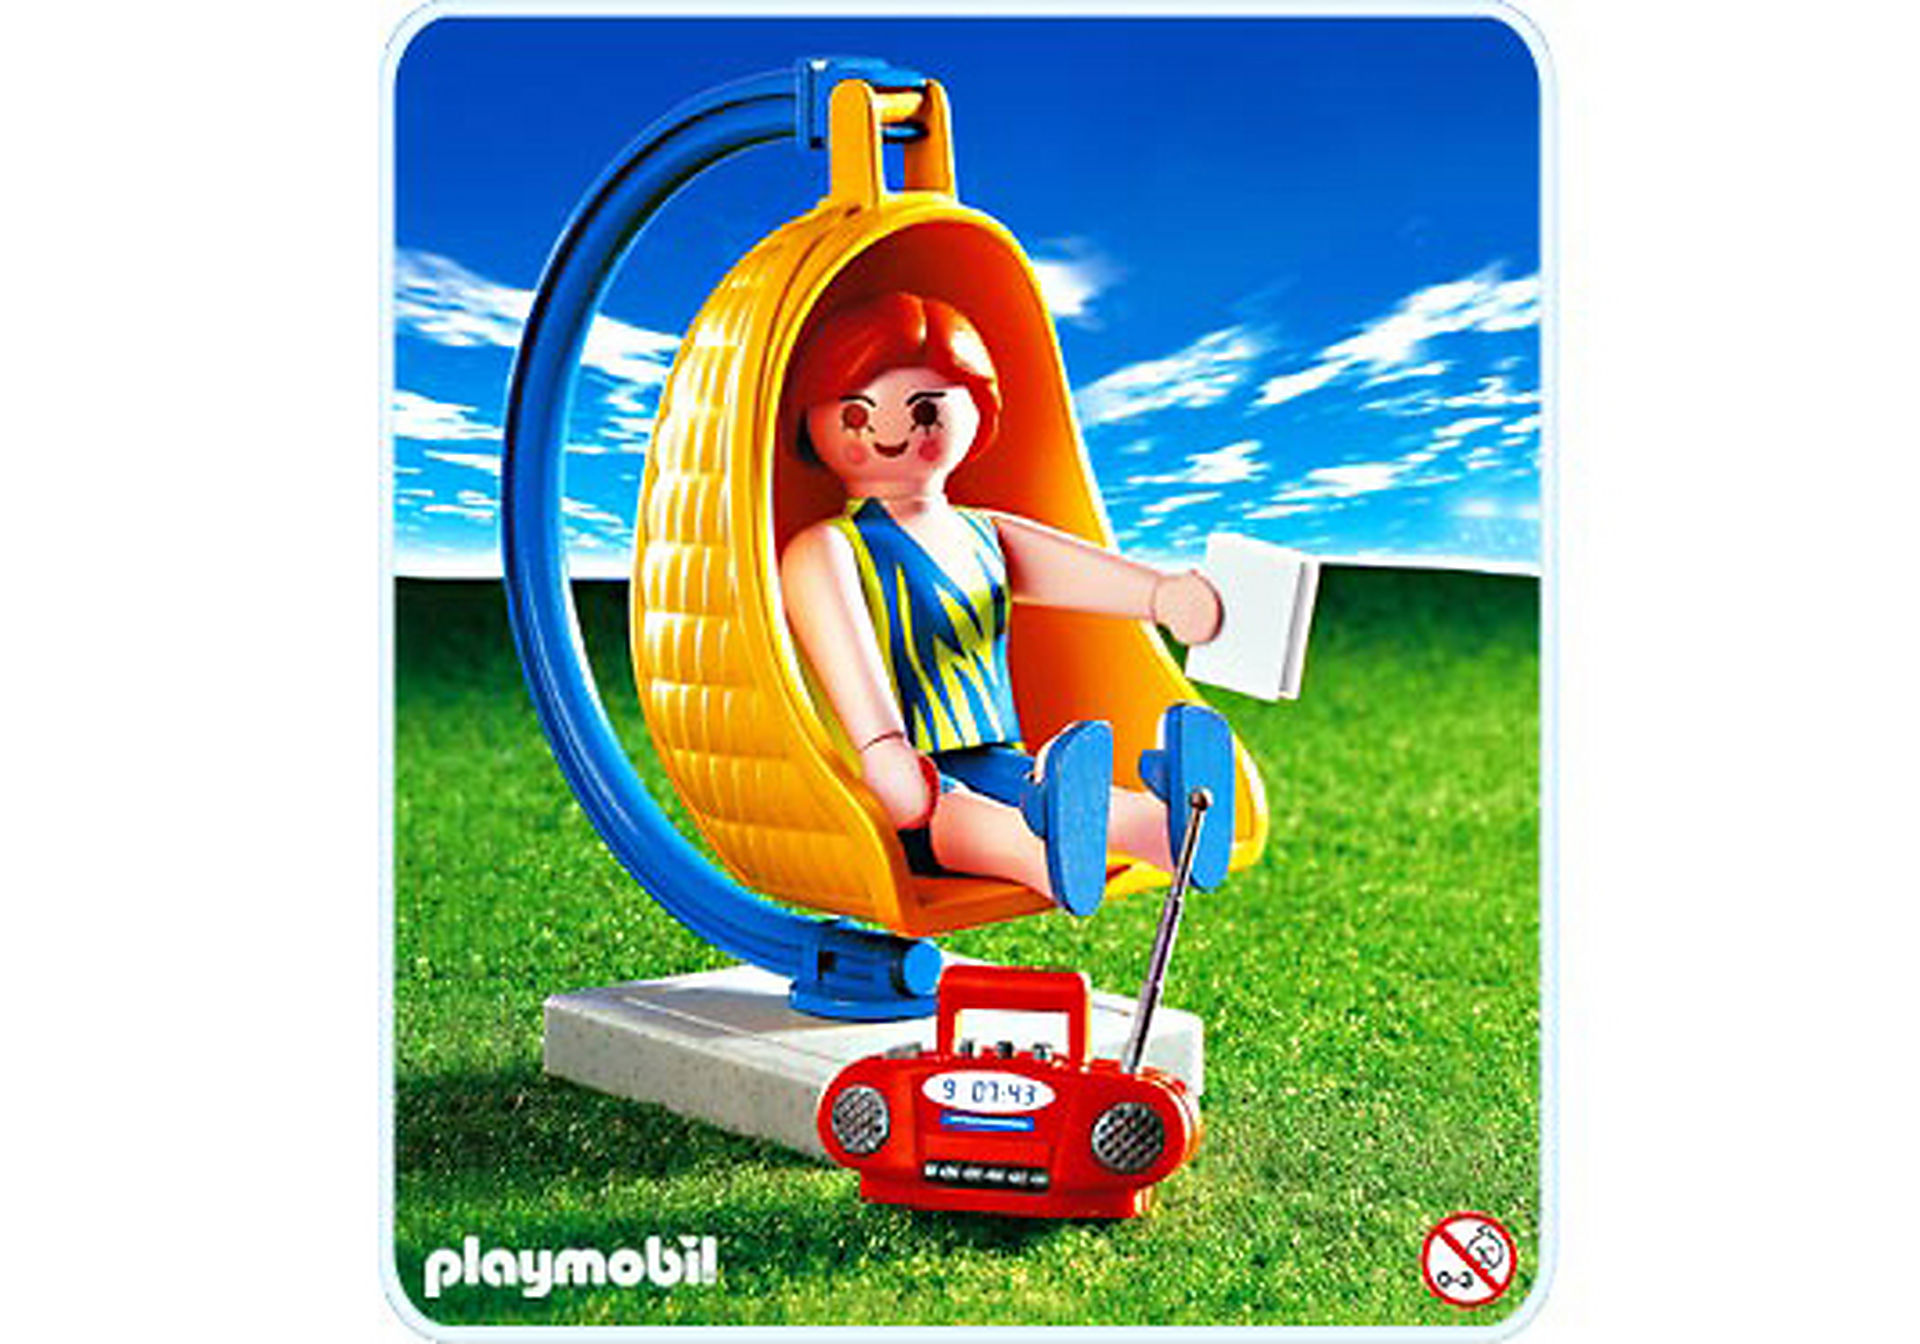 http://media.playmobil.com/i/playmobil/3234-B_product_detail/Schaukelkorb